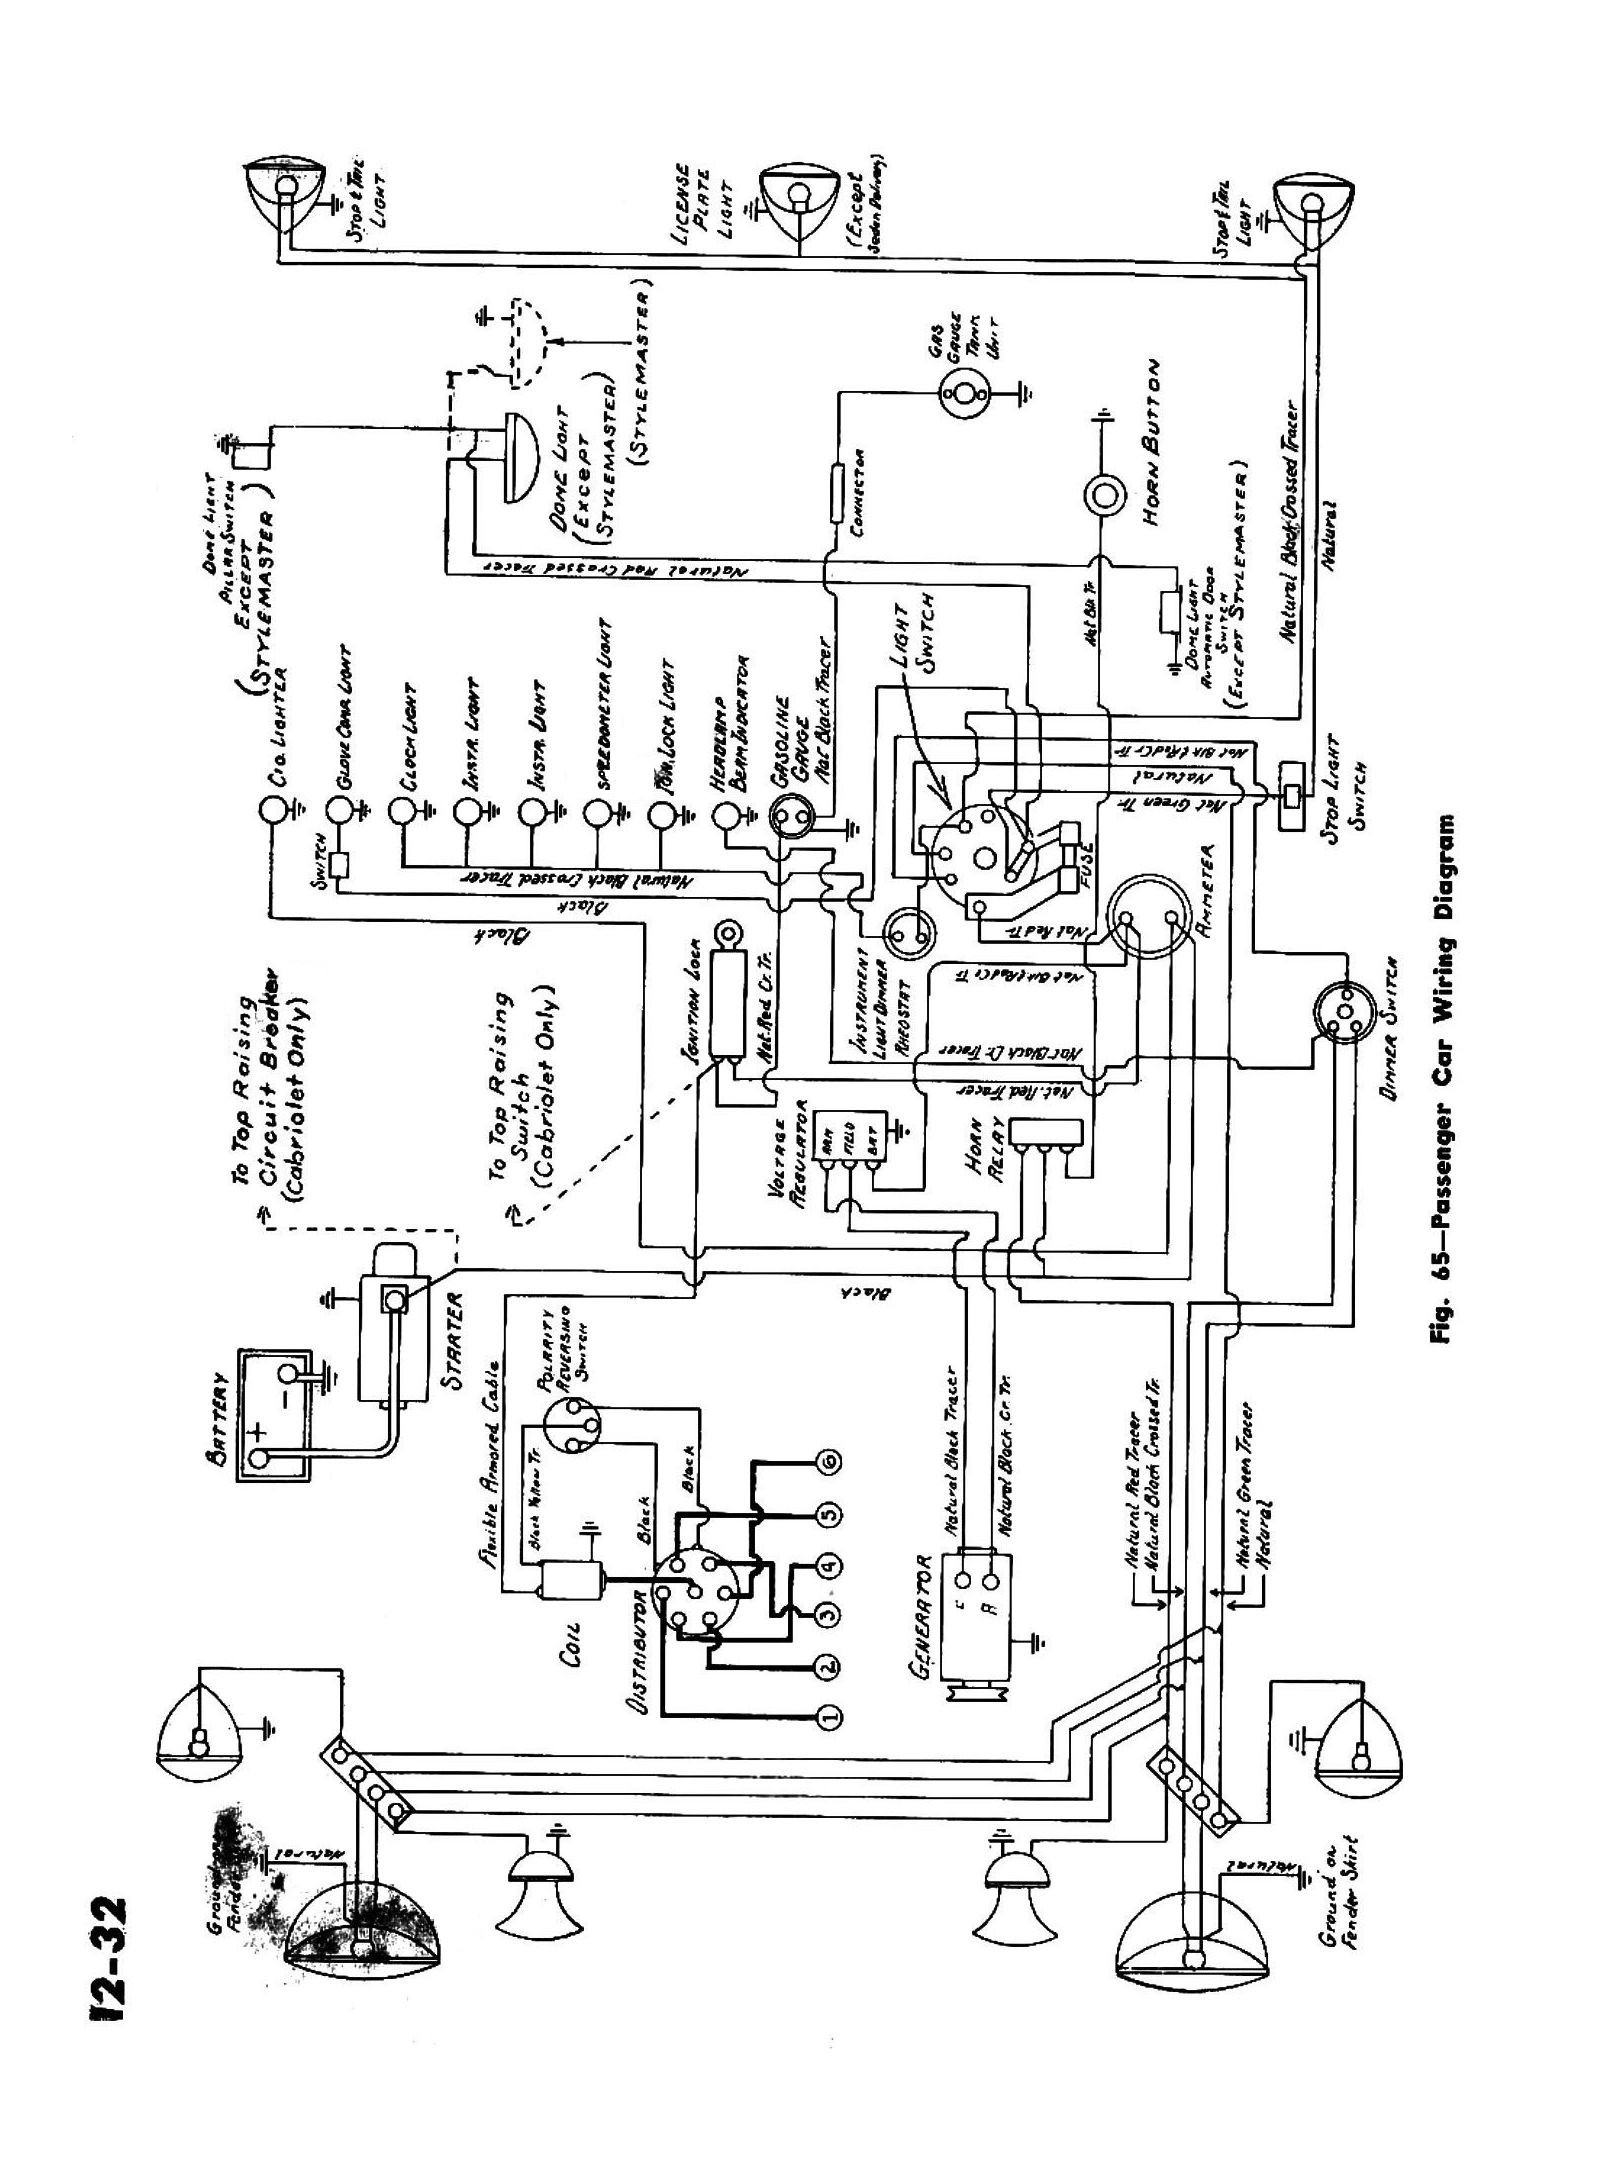 Wiring Diagram For 1986 Chevy Truck, Wiring, Get Free